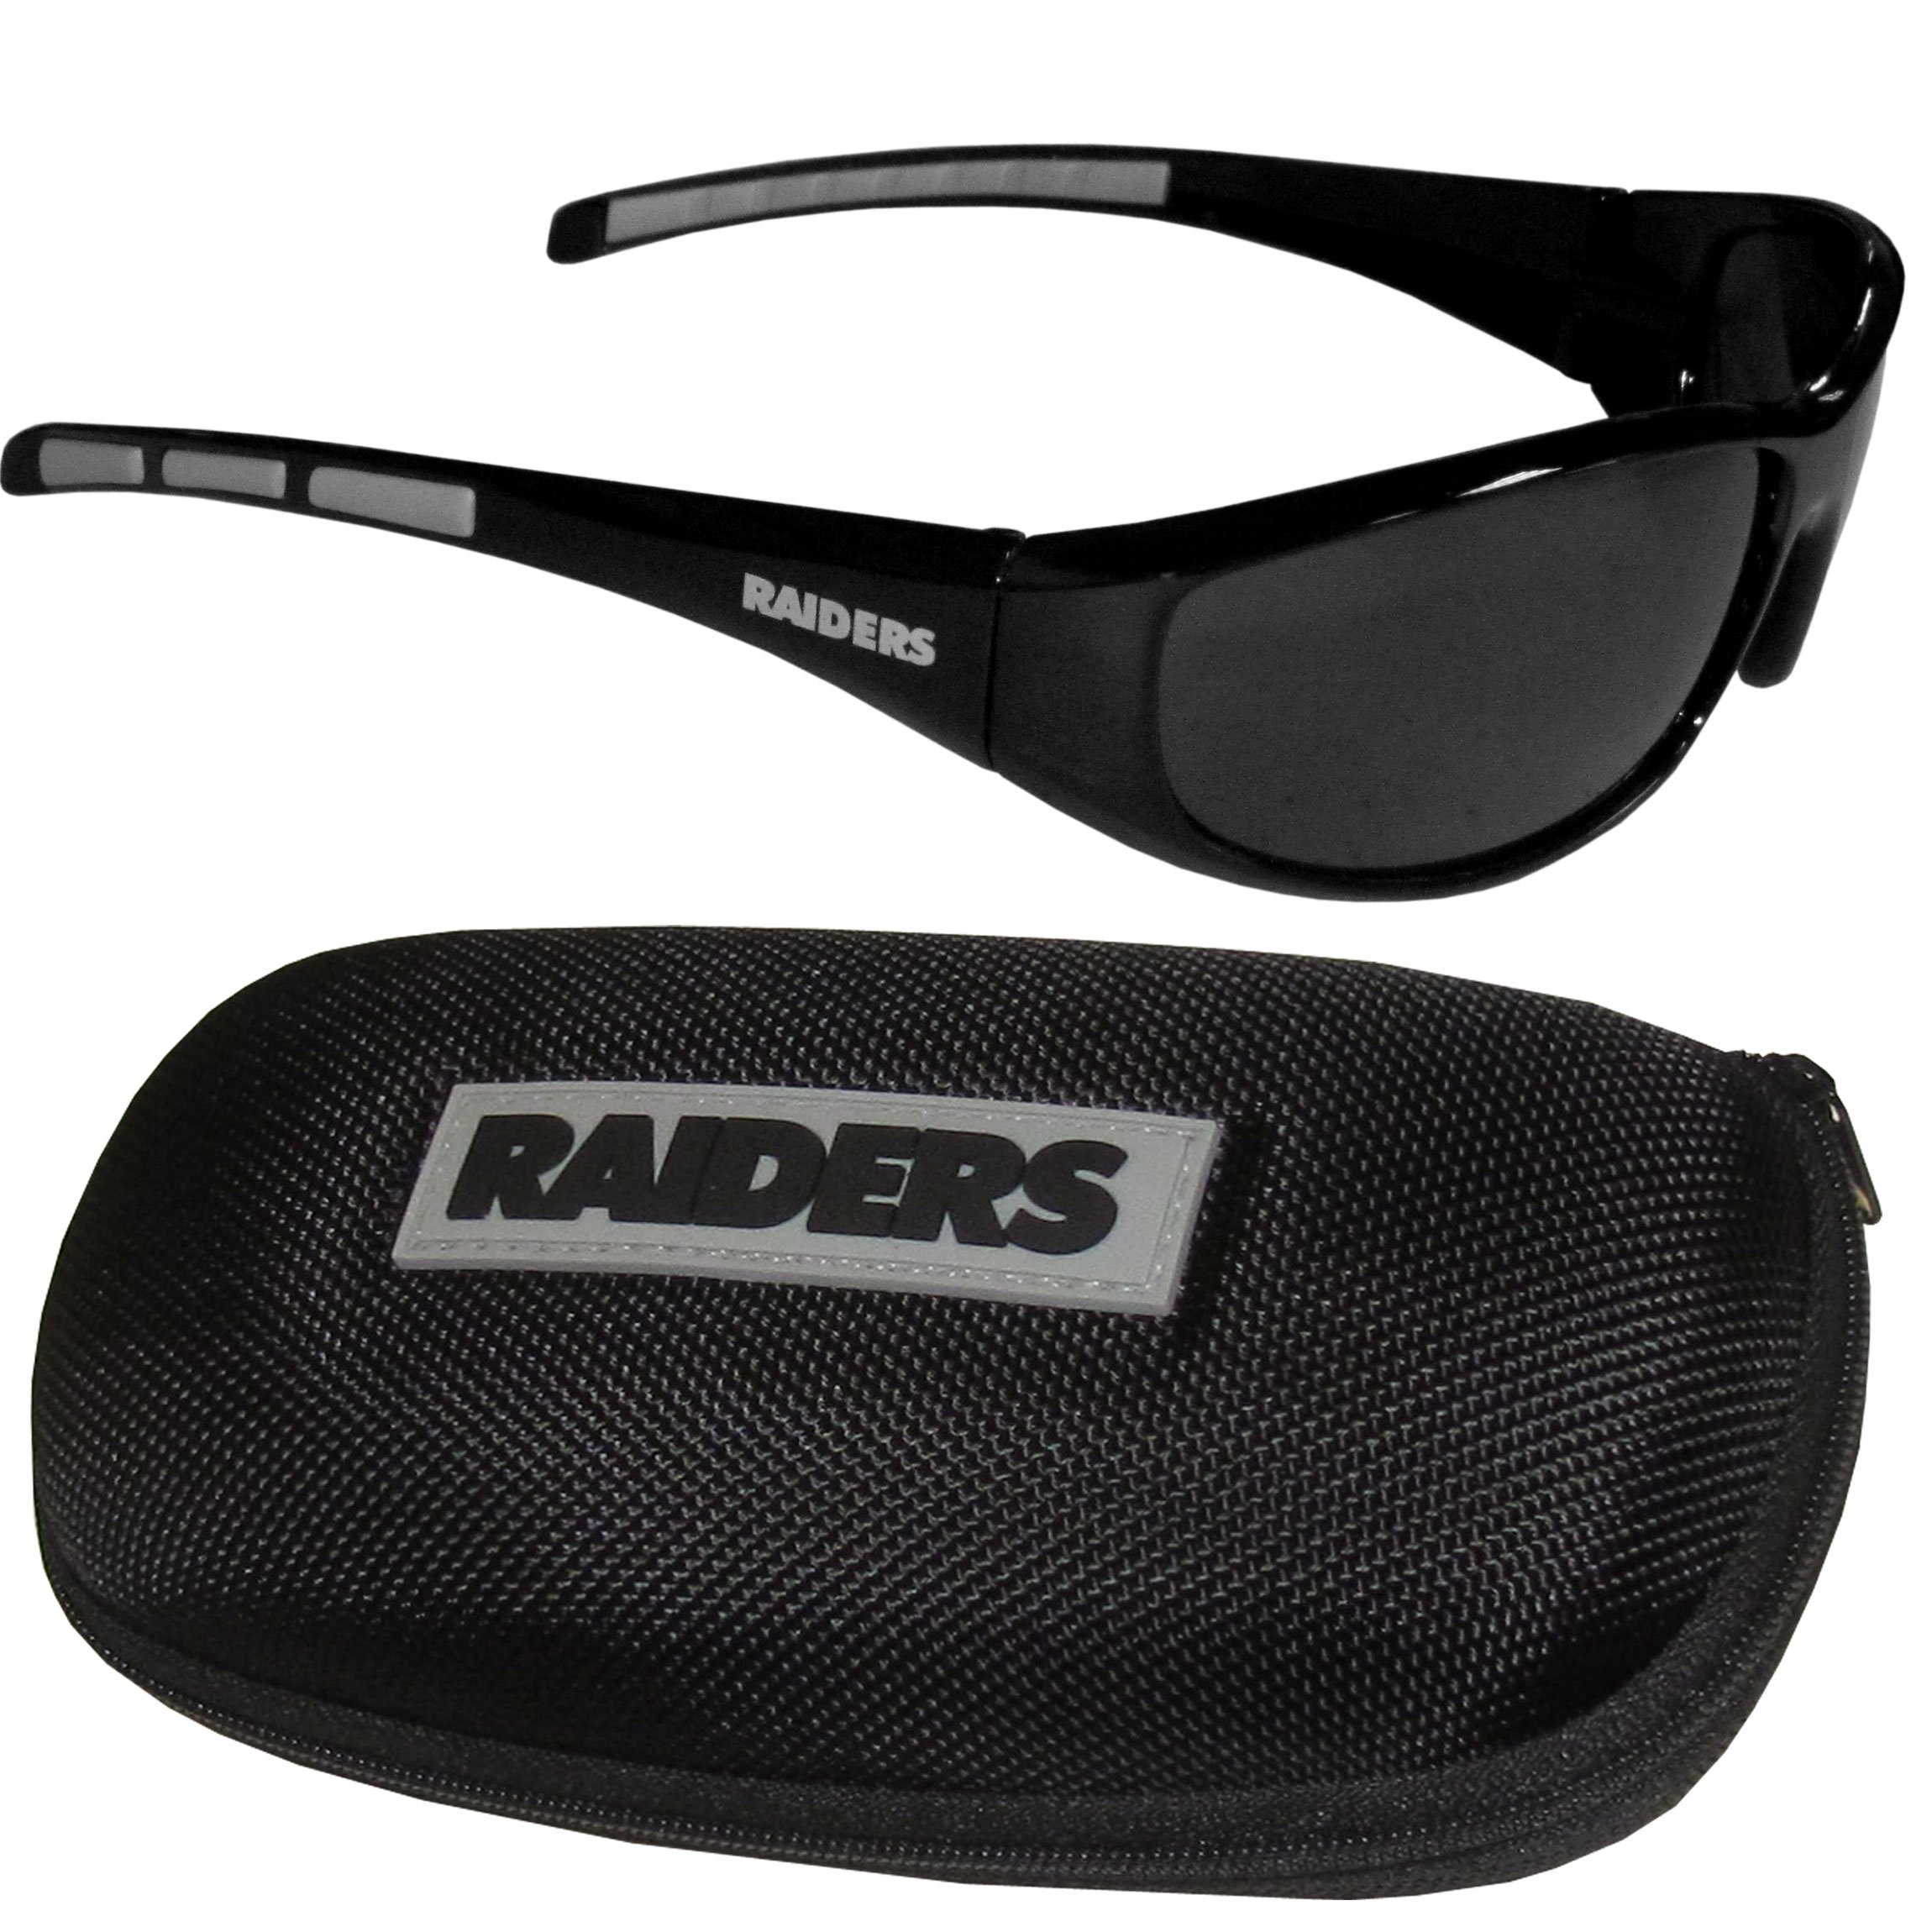 Oakland Raiders Wrap Sunglass and Case Set - This great set includes a high quality pair of Oakland Raiders wrap sunglasses and hard carrying case.